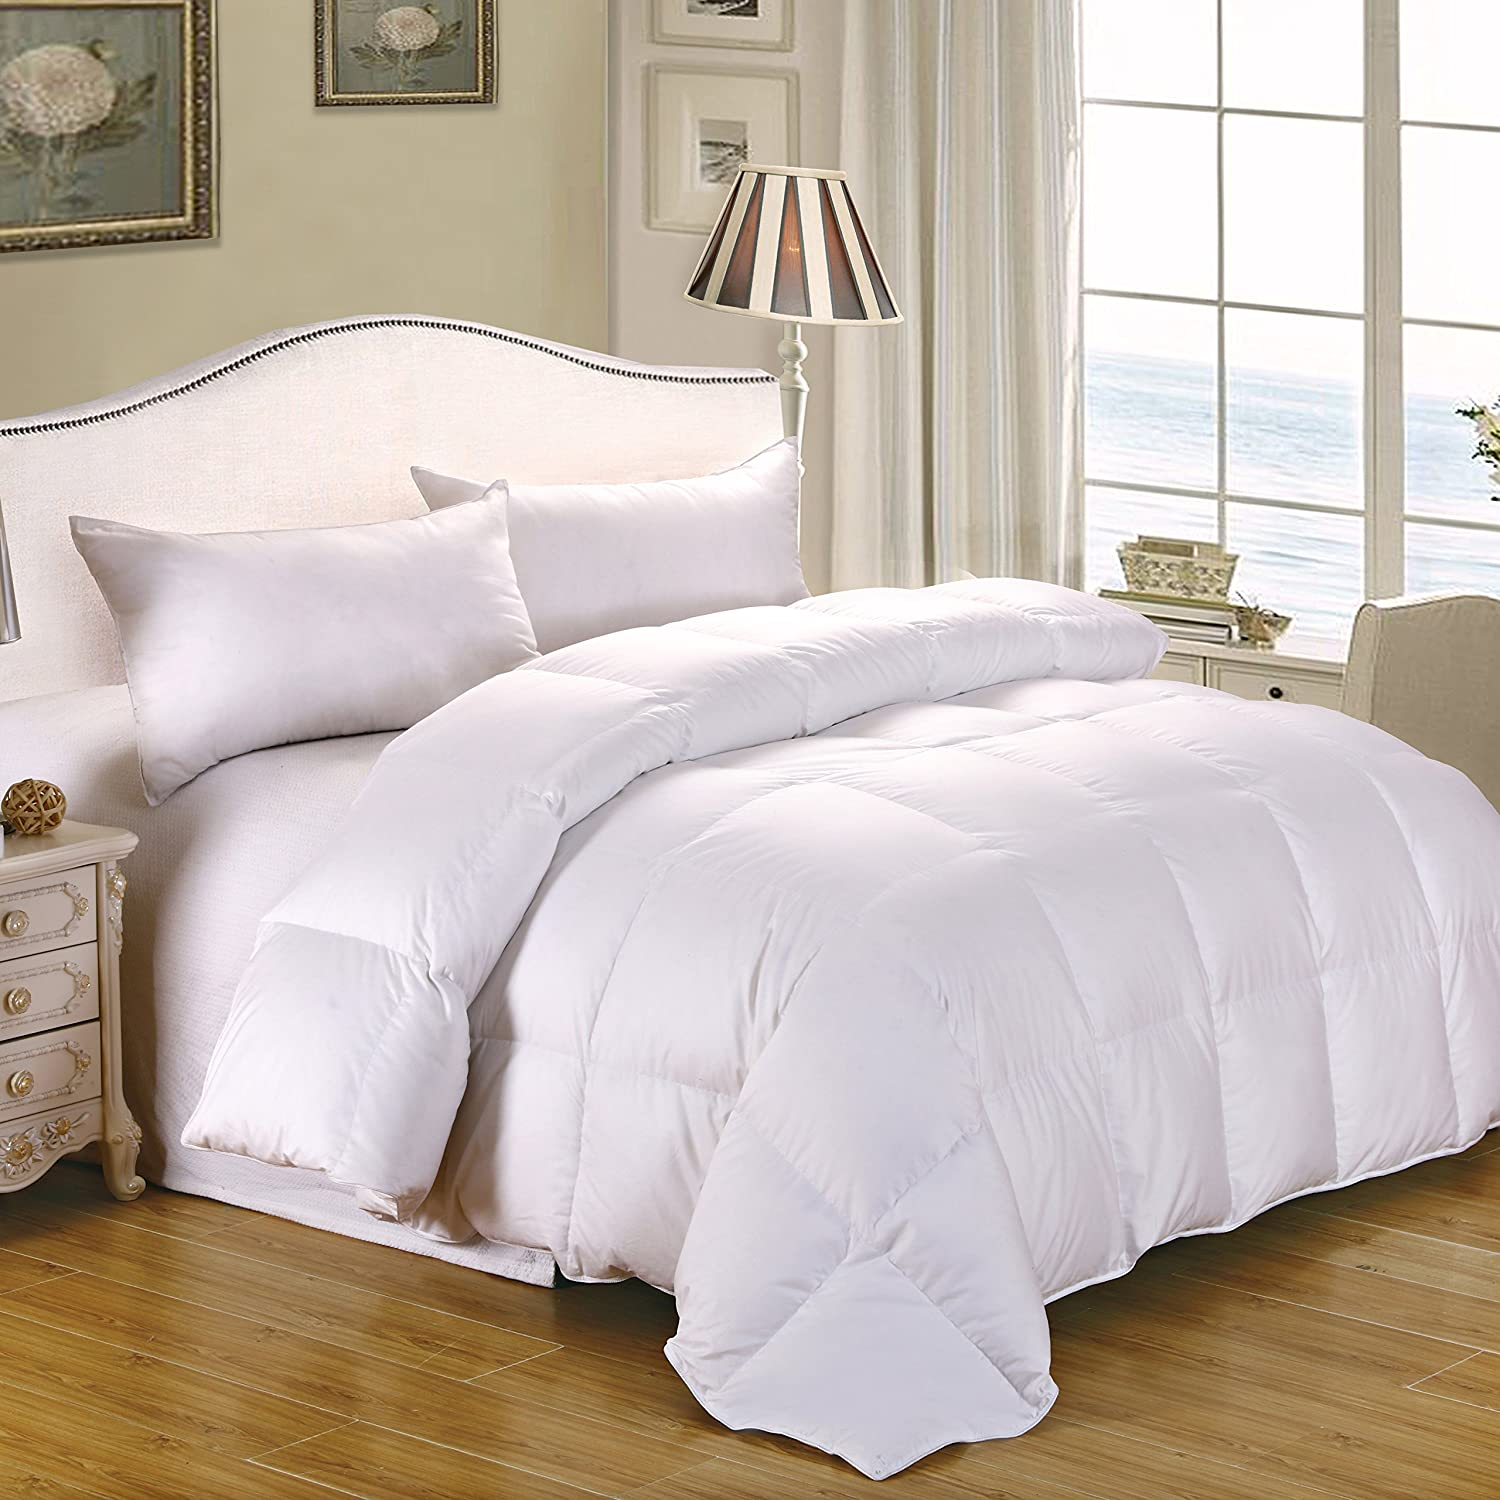 CozyFeather Real Goose Down Comforter Duvet - Single - Queen Full - King - Hypoallergenic - 100 Percent Cotton 400 Thread Count - 750 Fill Power - Solid White